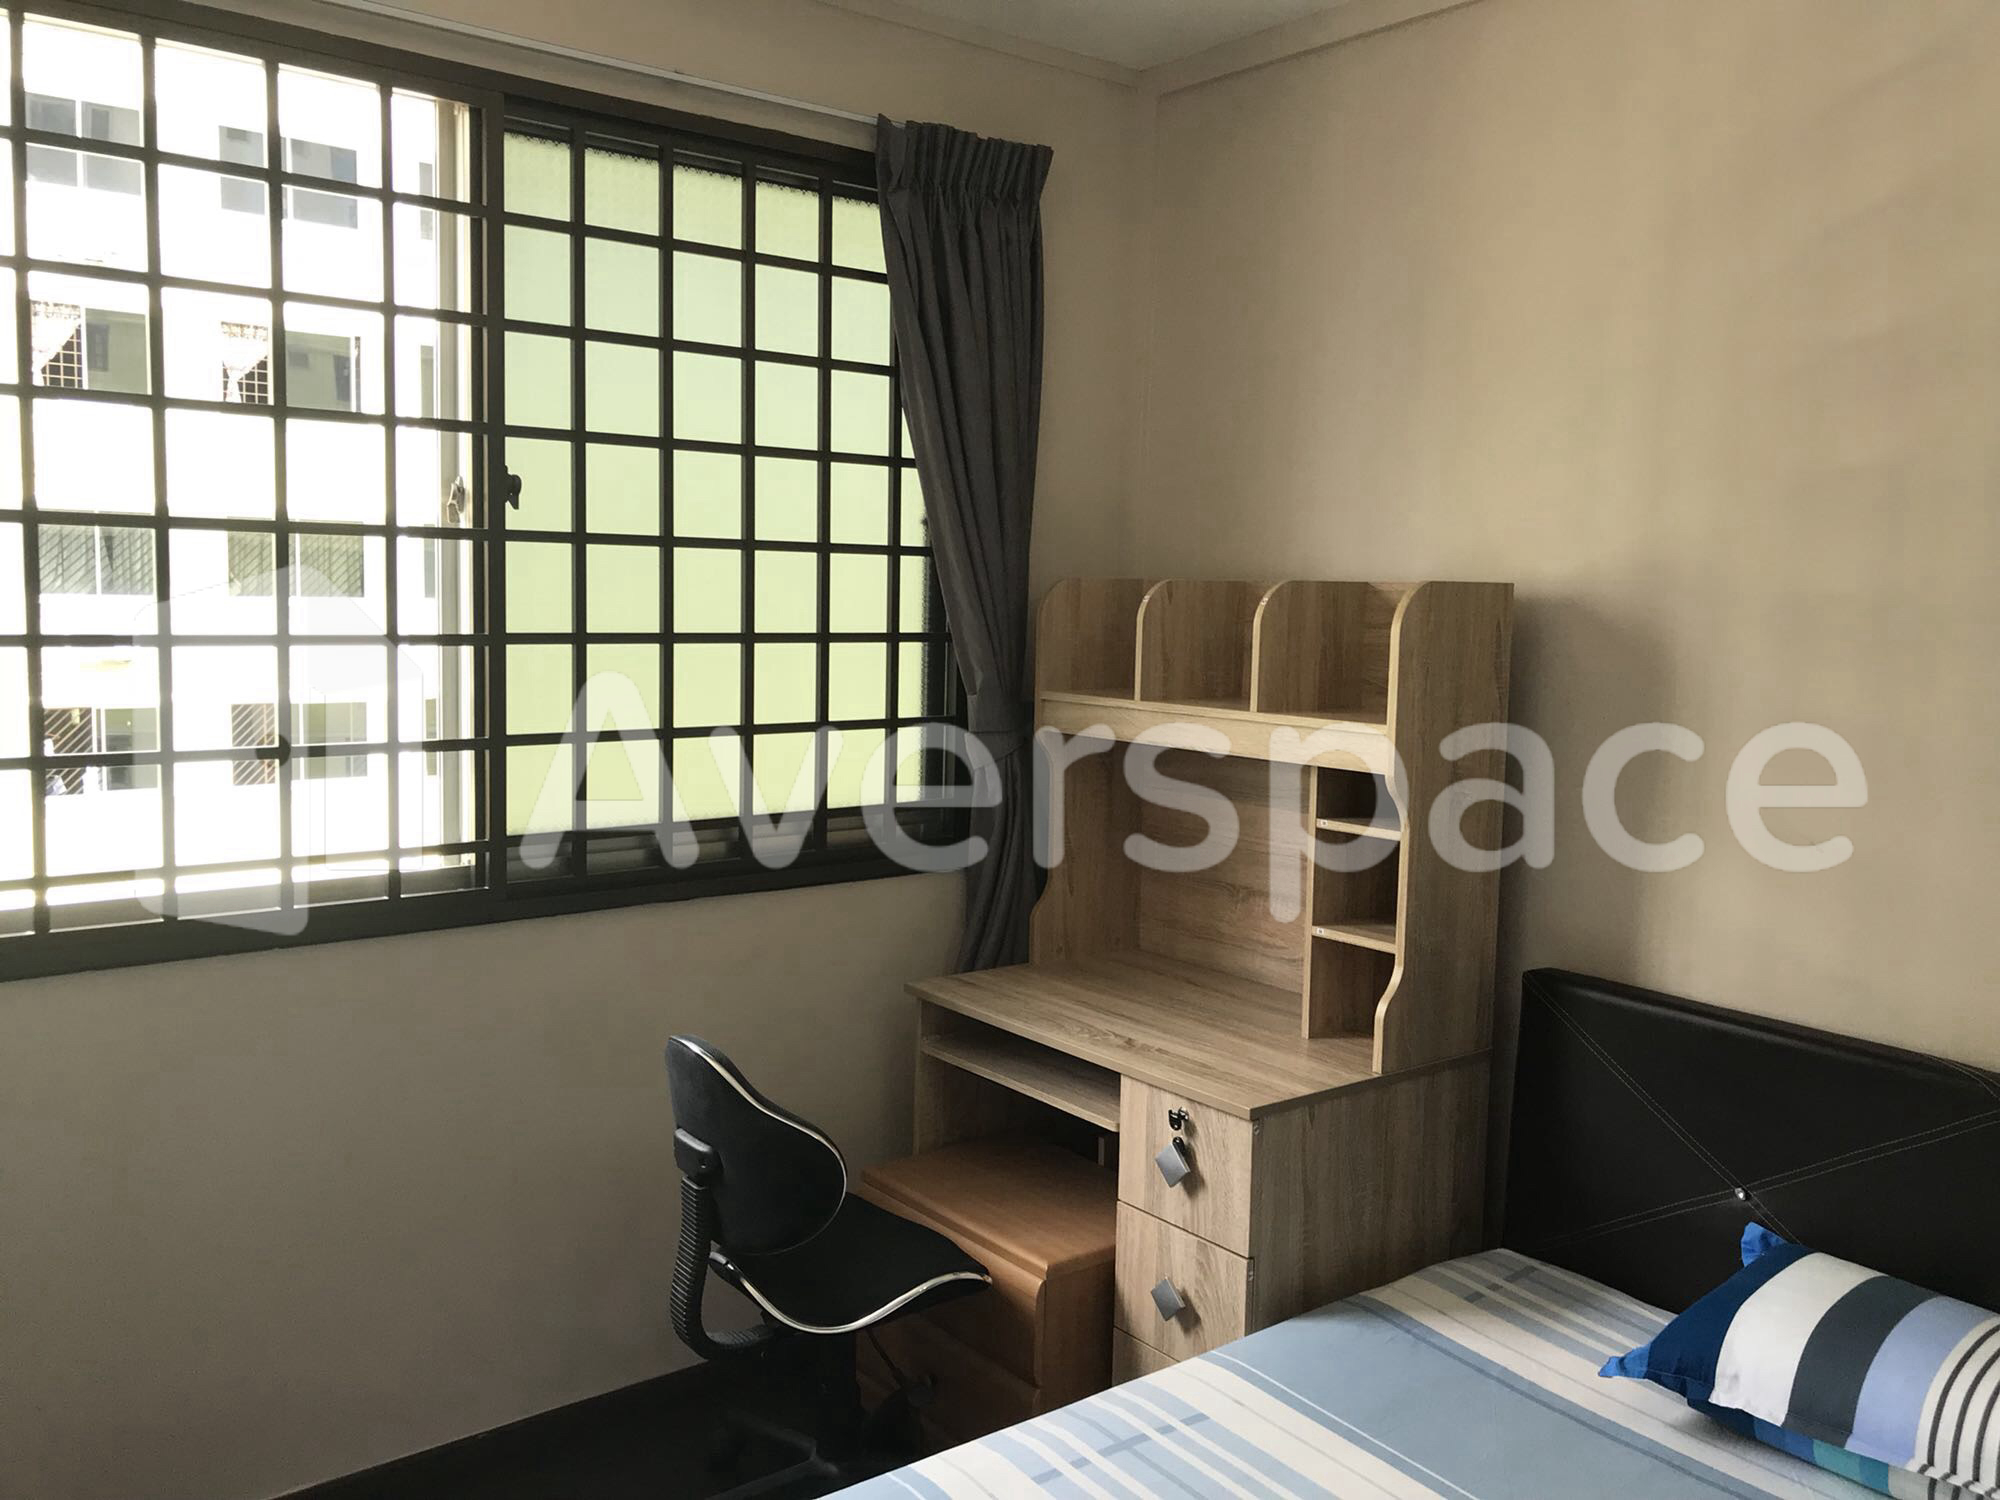 824 Jurong West Street 81, District 22 Singapore